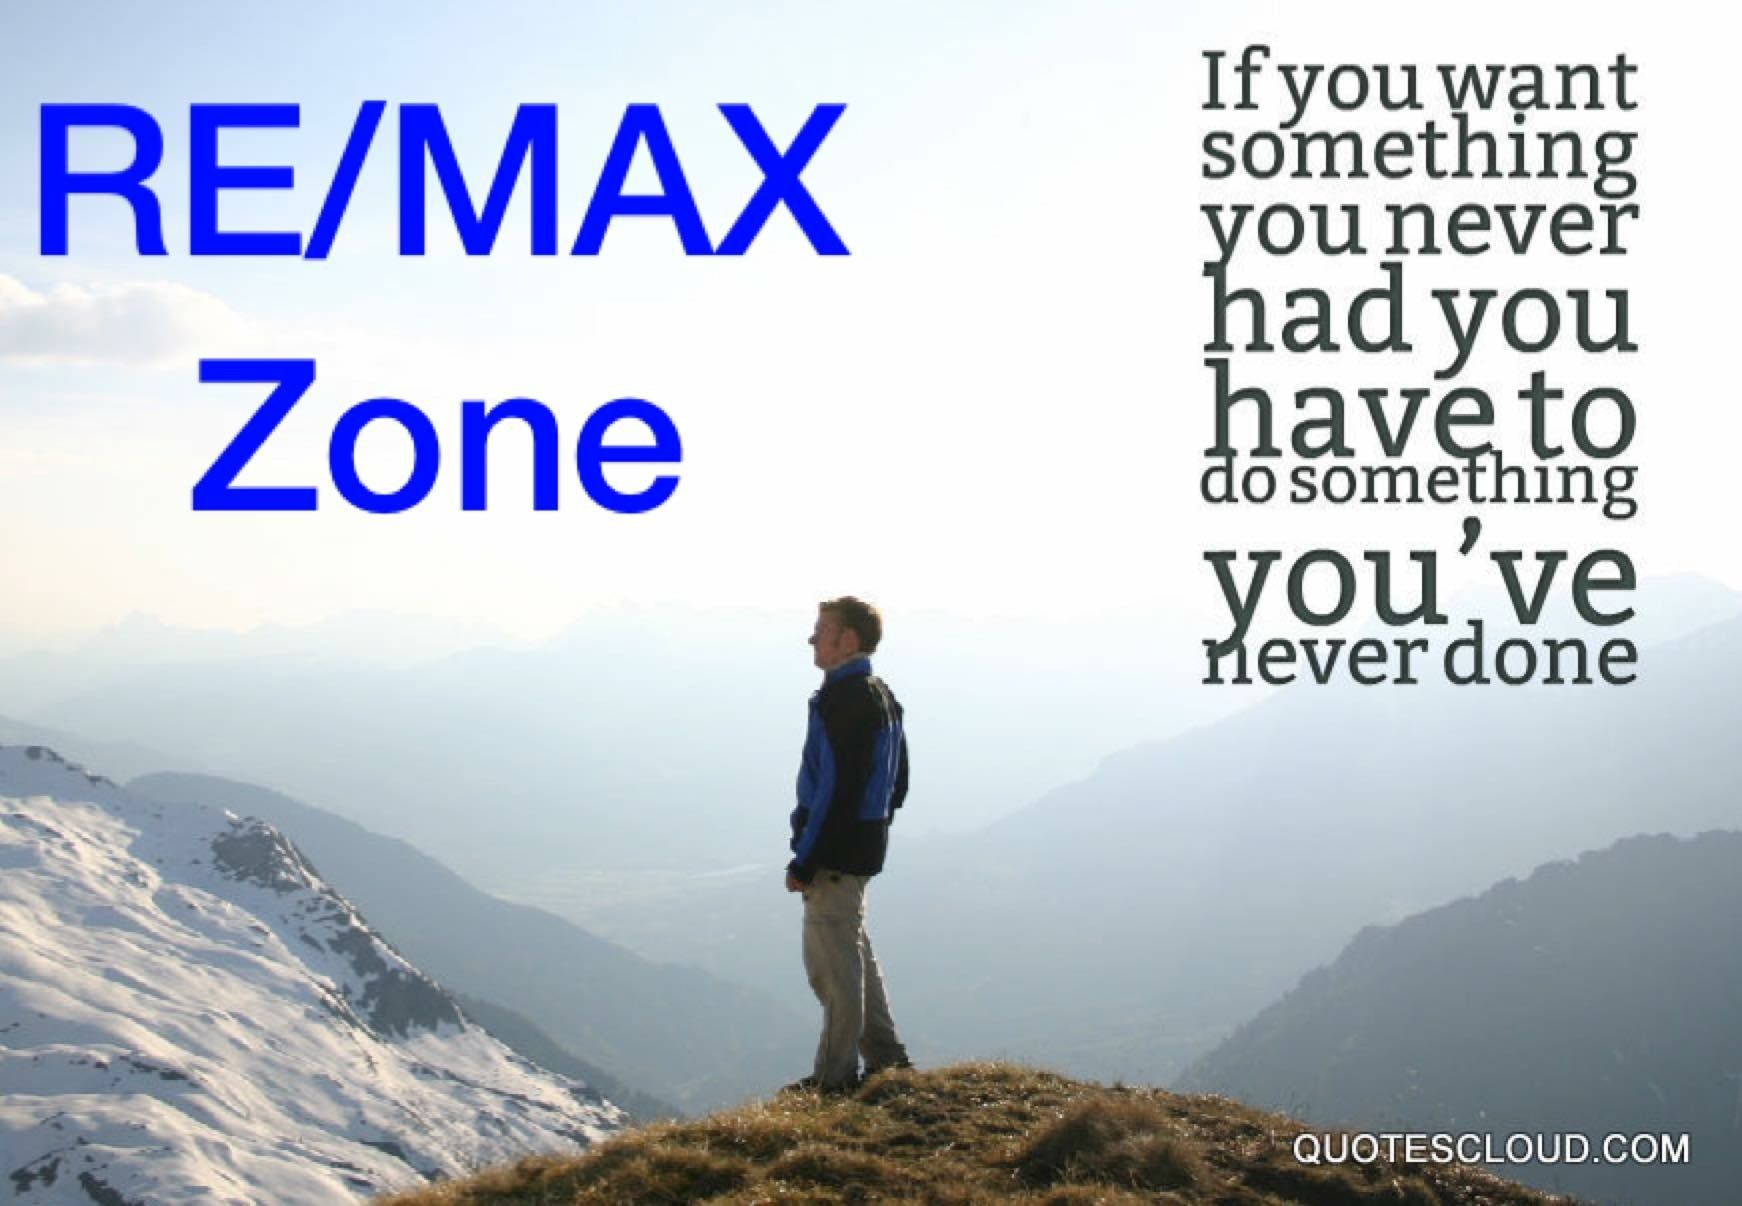 Oh, yes!! Looking for Real Estate Agents that want to take their careers and life to a higher level! This is us, RE/MAX Zone 787-380-3296